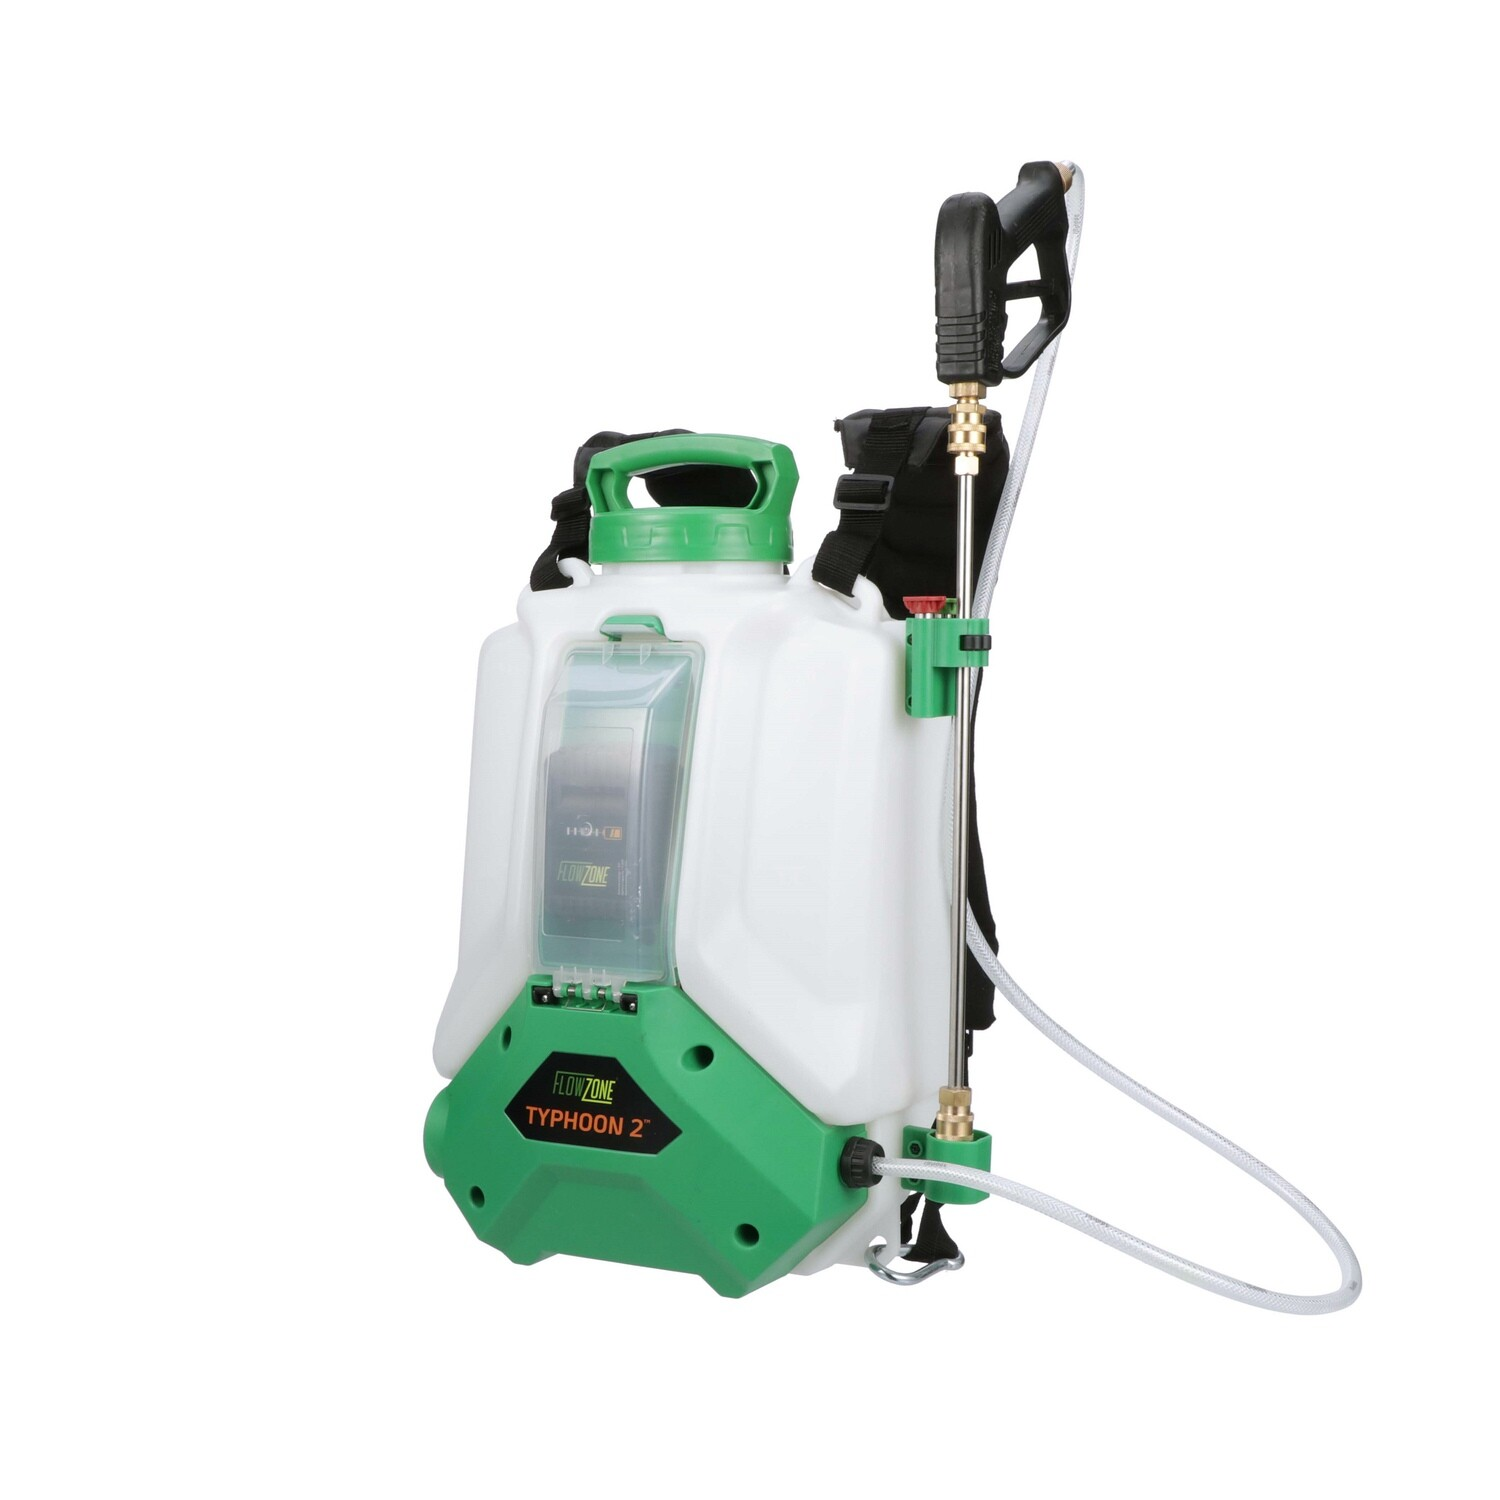 Typhoon 2 Dual-Pressure Sprayer (4-Gallon)